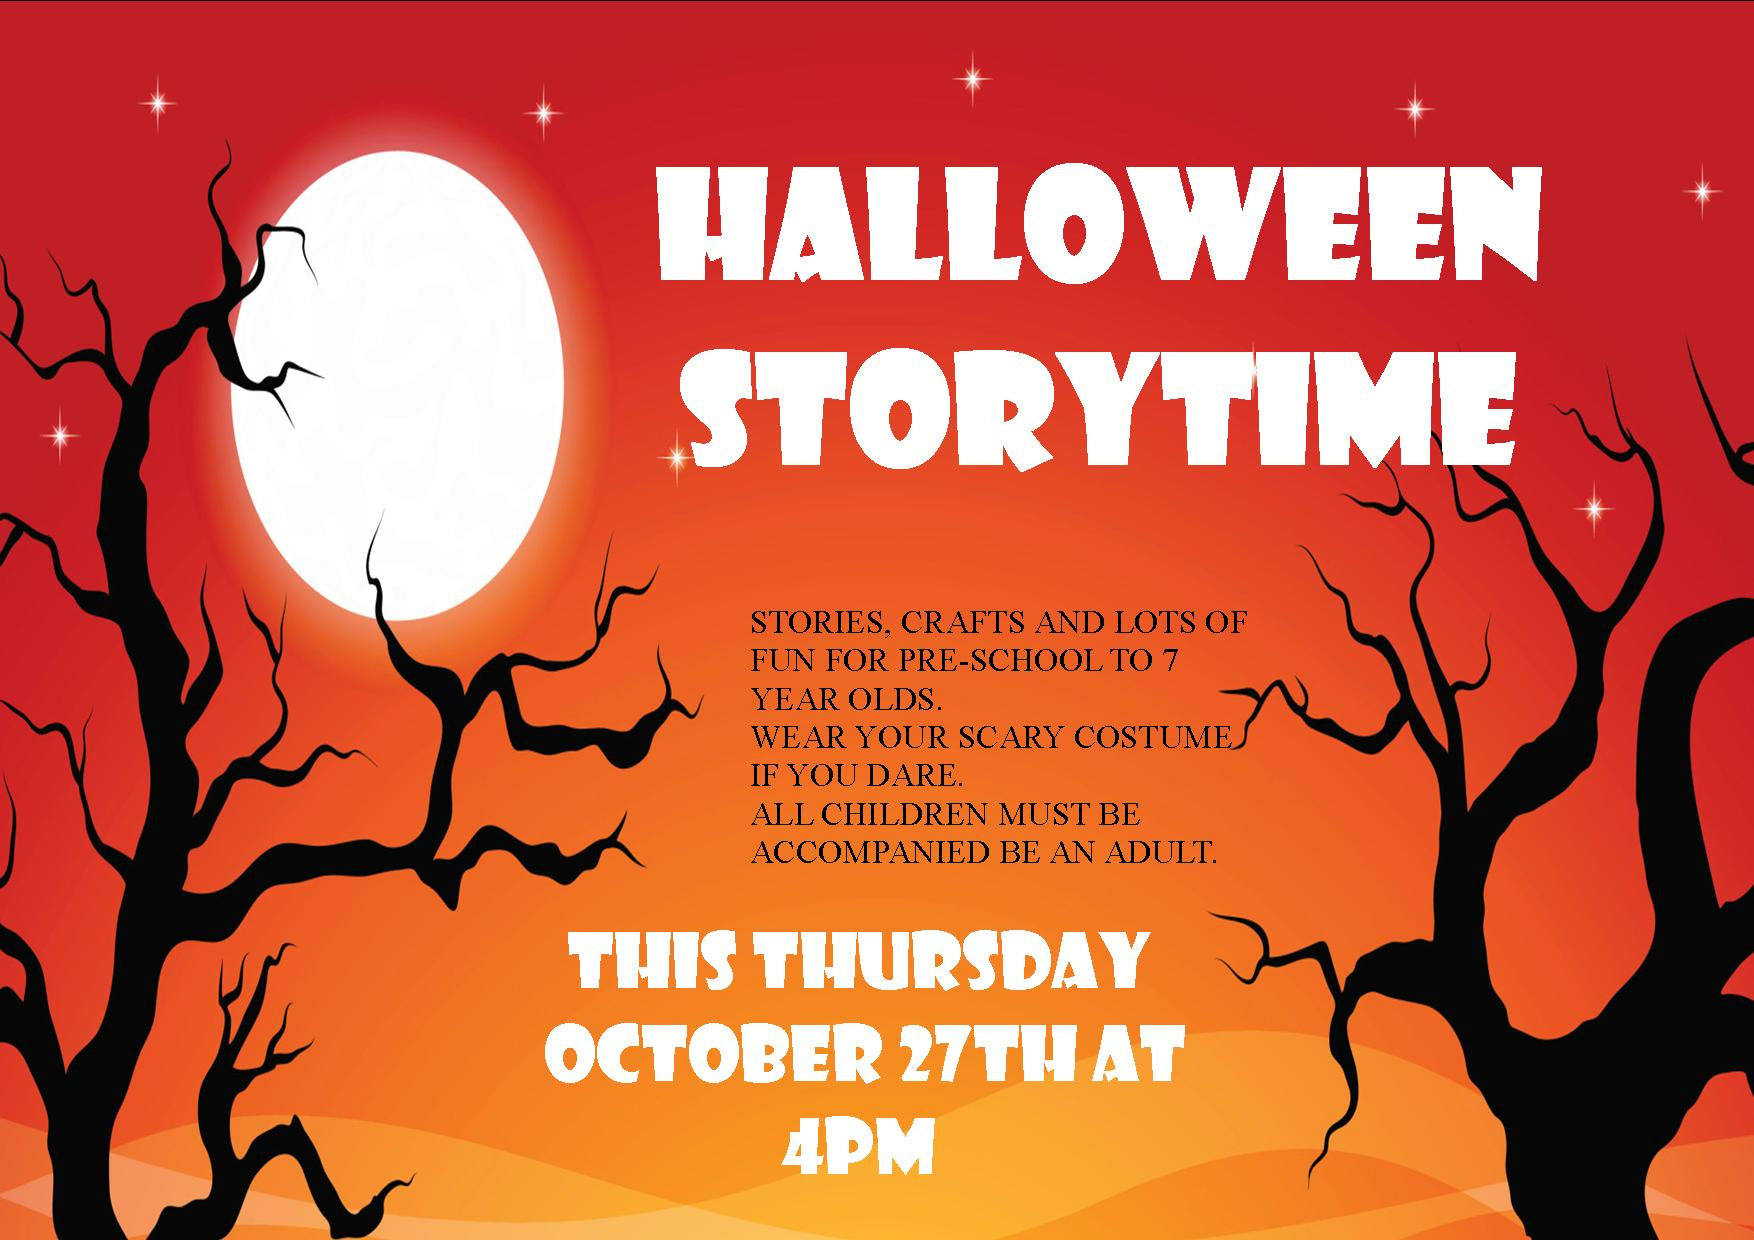 Halloween Storytime At Clonmel Library